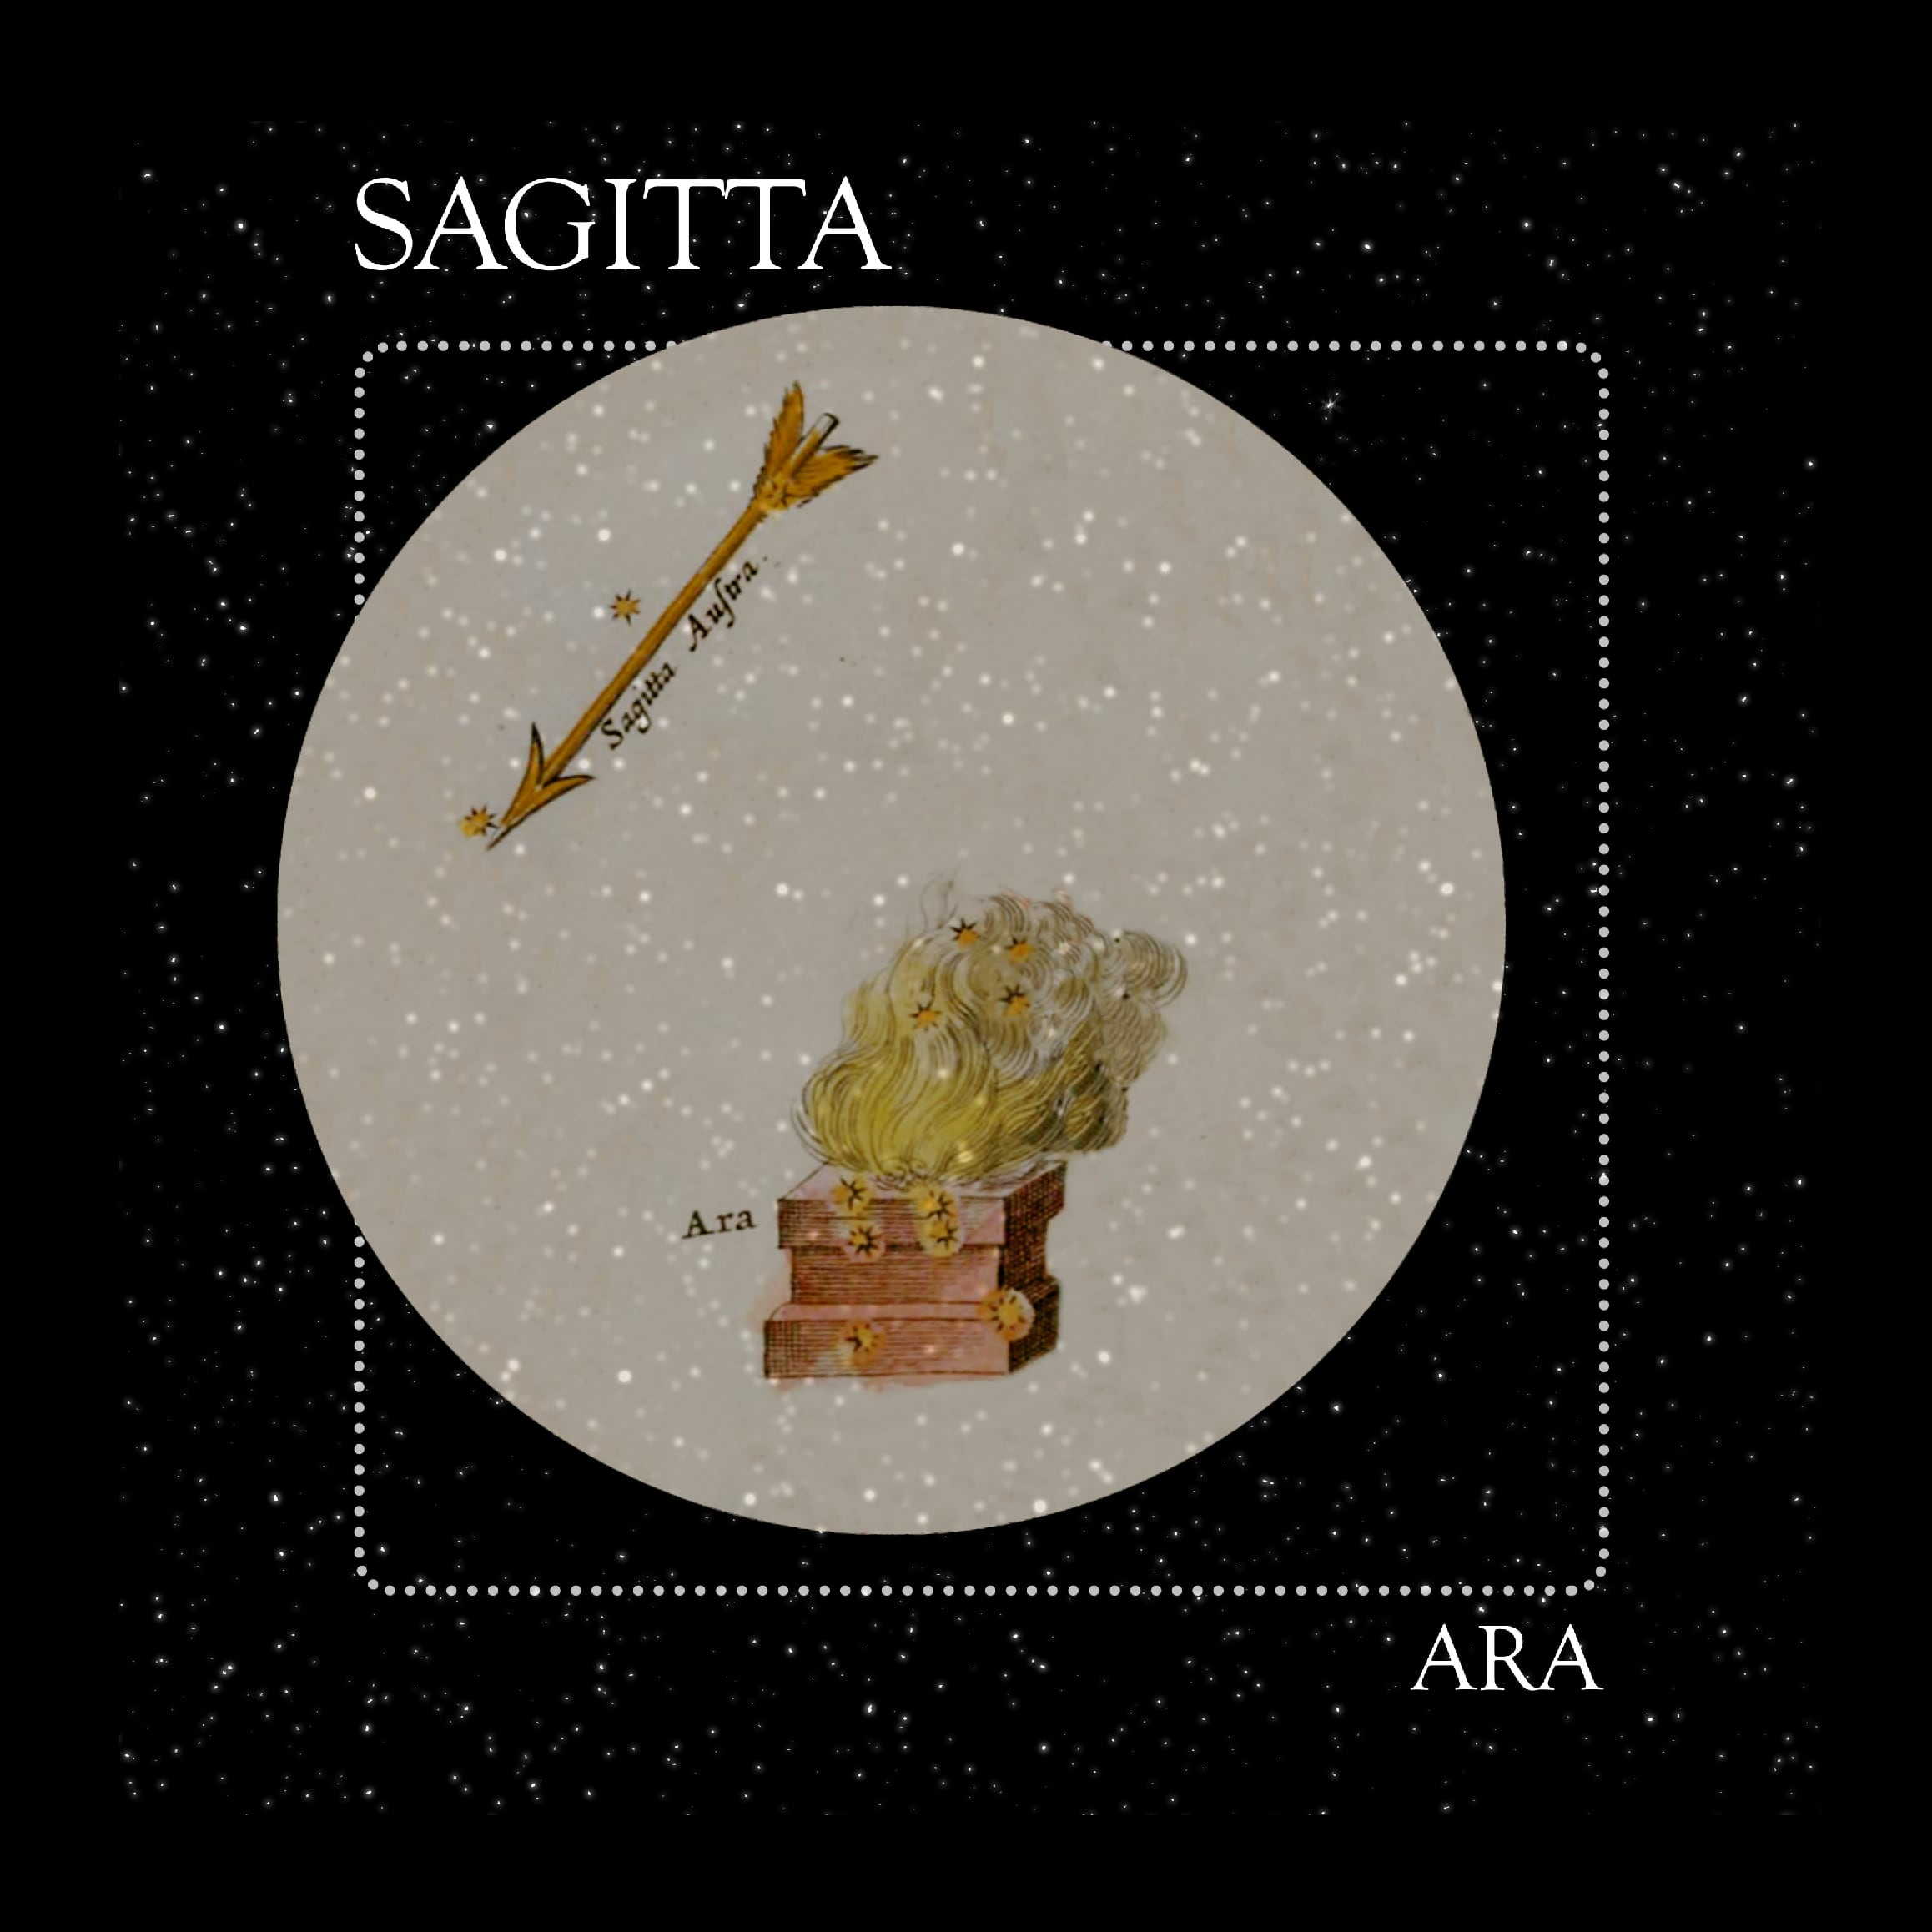 10 Apollo's Arrow: The Constellations of Sagitta and Ara